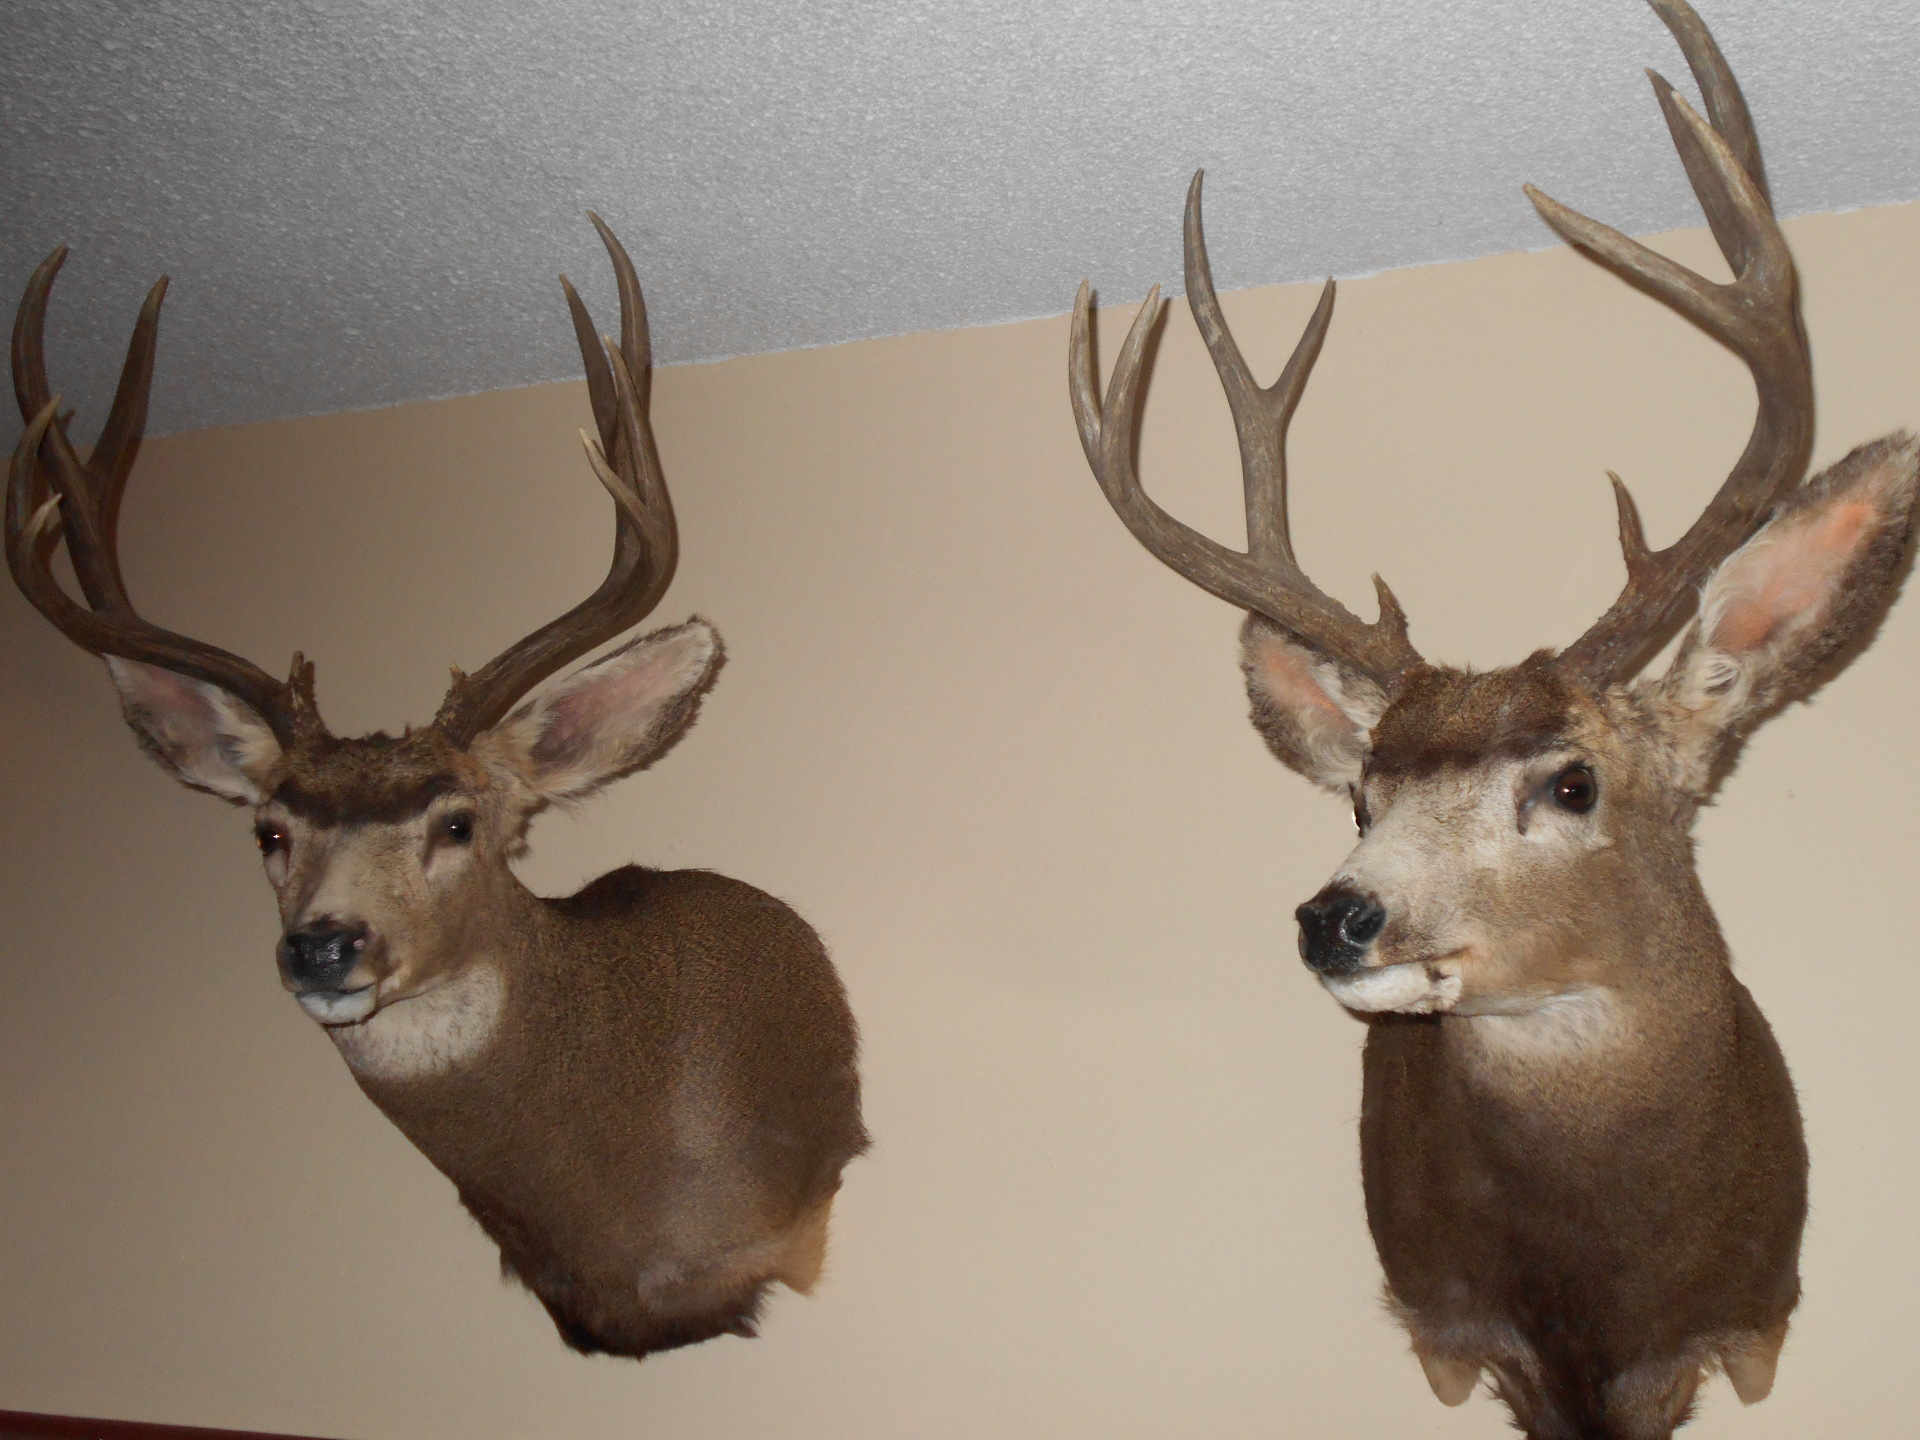 Golden Ridge Taxidermy, Taxidermy, Deer, Mount, Deer Mount, Taxidermist